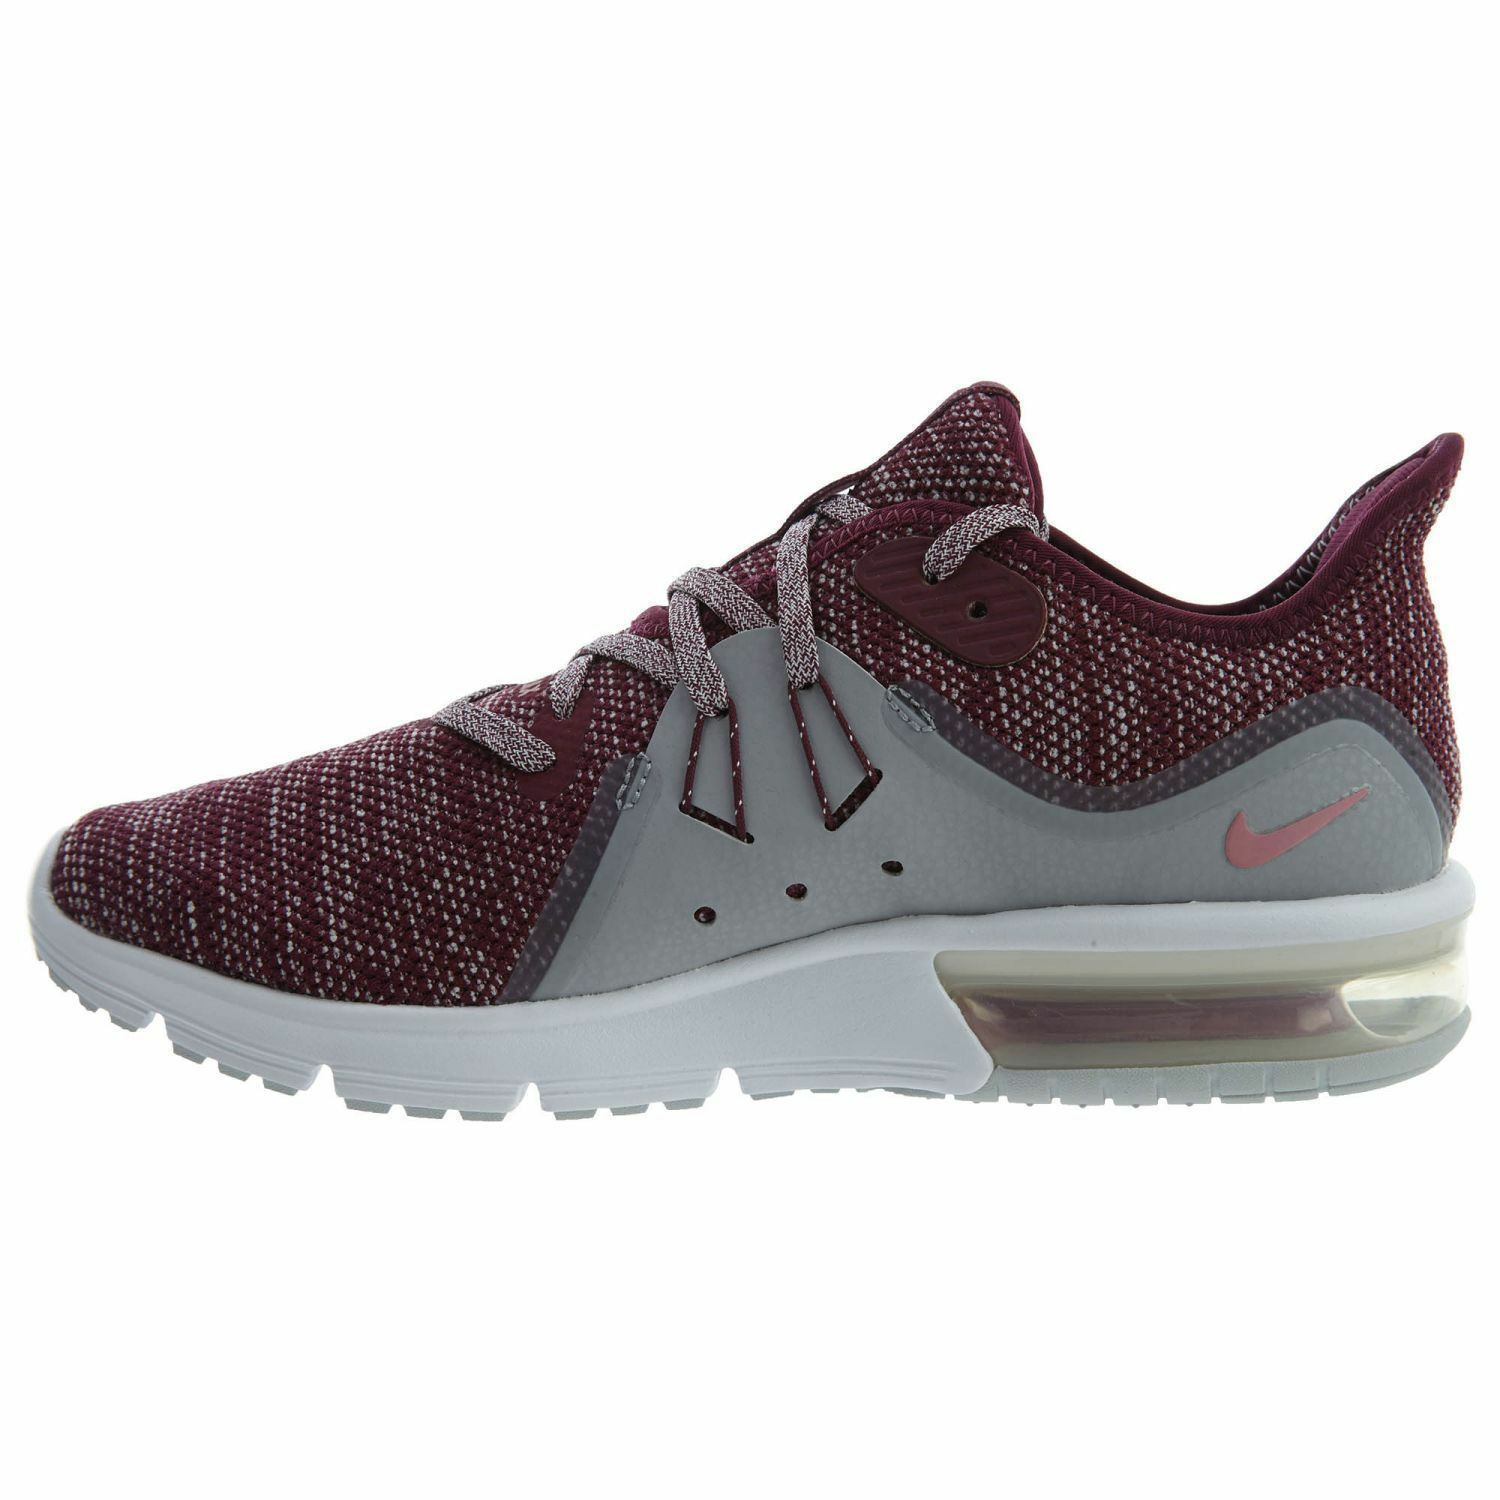 WOMEN'S NIKE AIR MAX SEQUENT 3  908993-606 Bordeaux Knit Knit Knit Running shoes 6db5a7